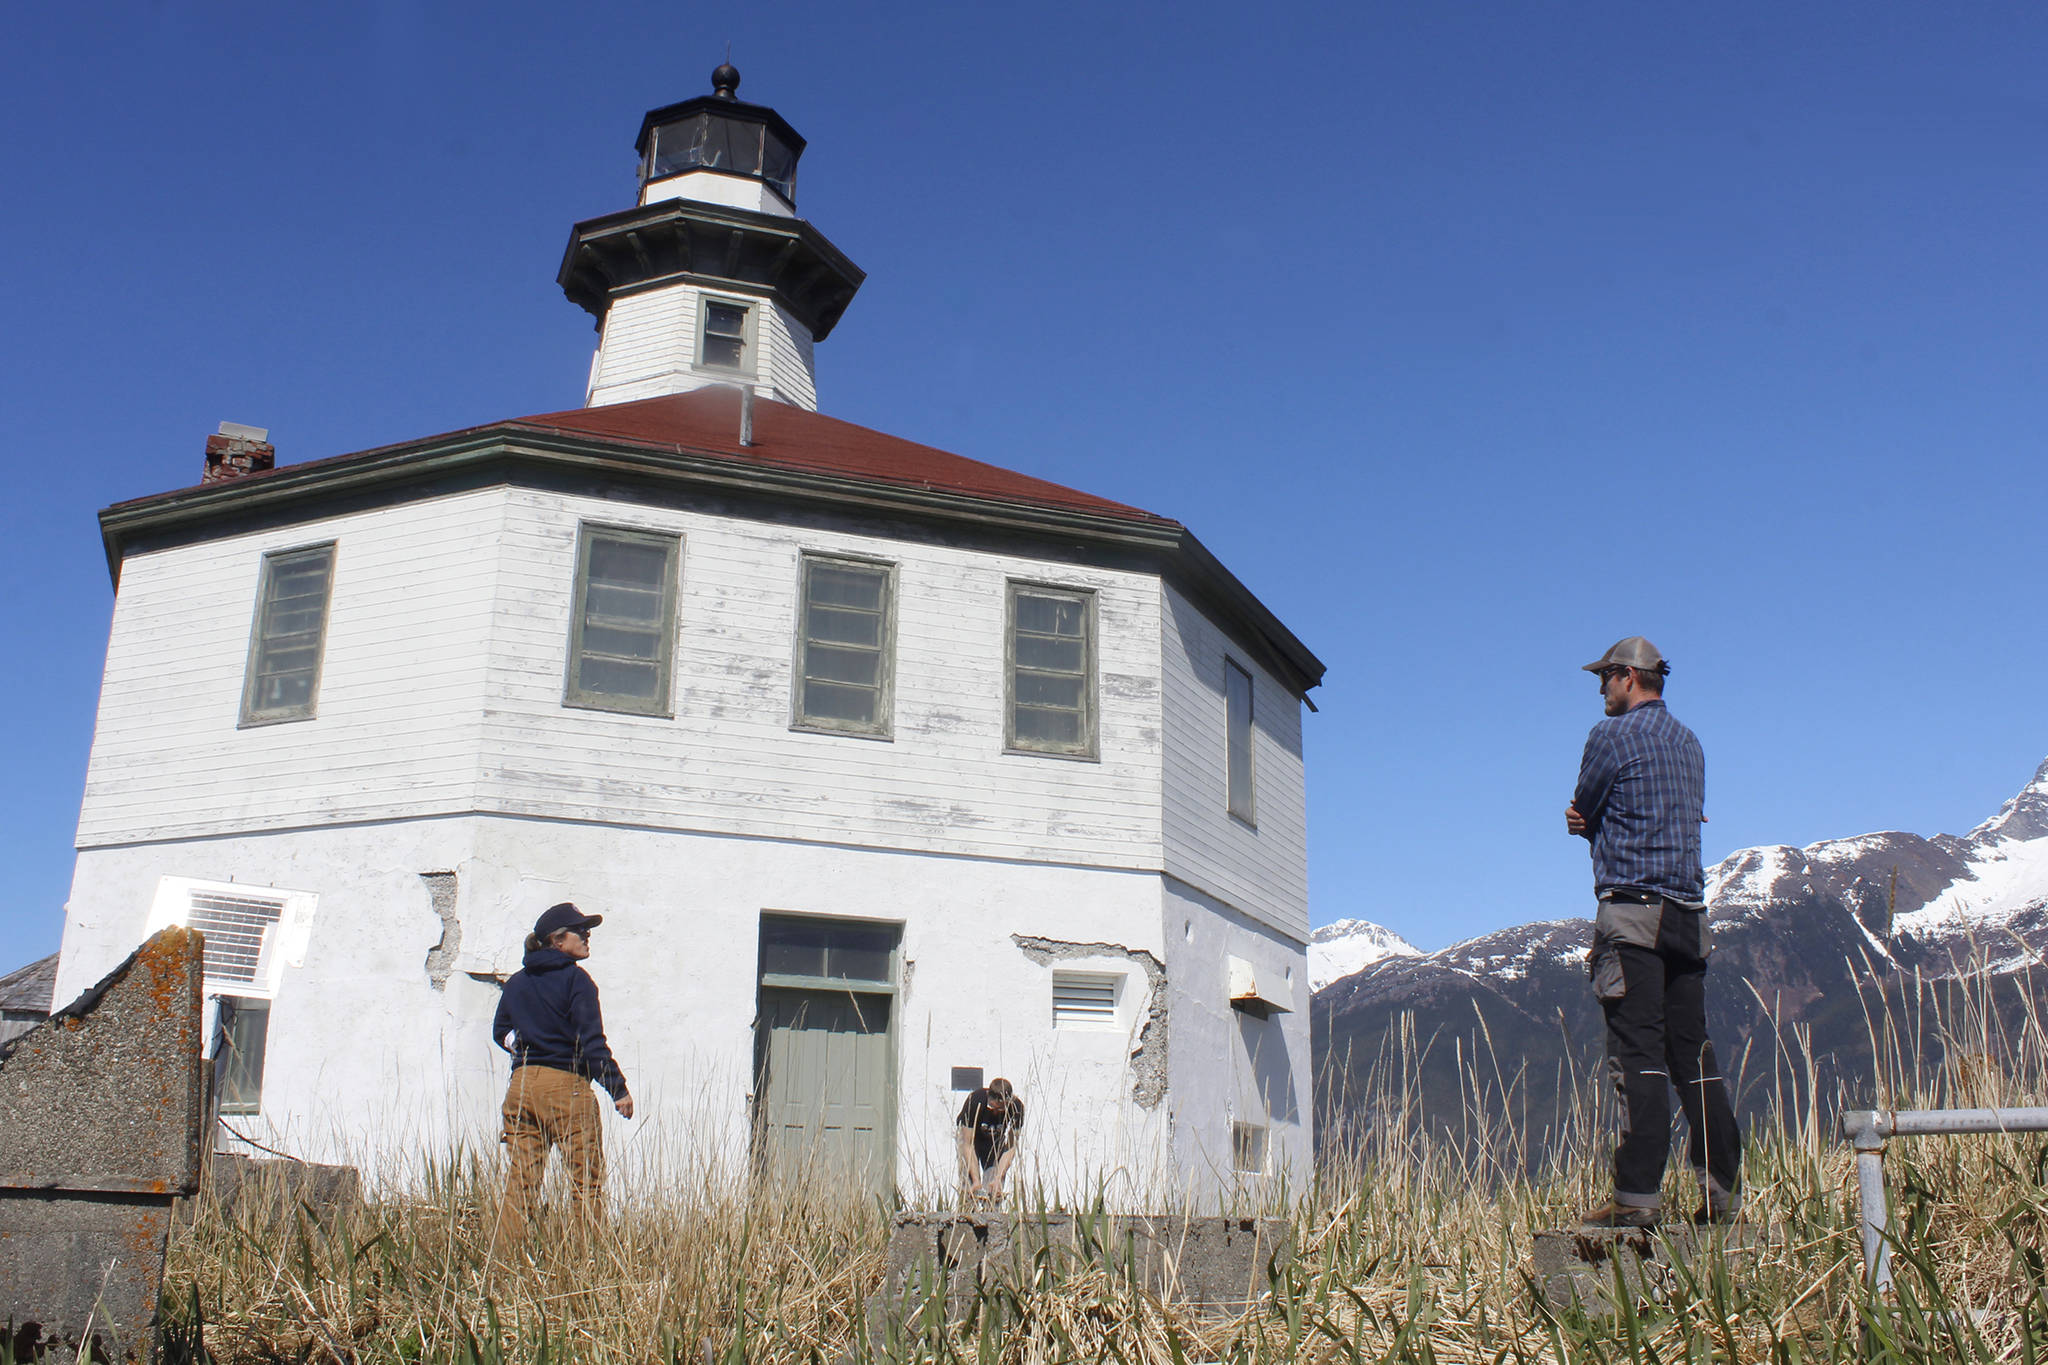 Eldred Rock Lighthouse Preservation Association Executive Director Sue York speaks to Marine Exchange of Alaska Field Operations Supervisor Nick Hatch at Eldred Rock Lighthouse on Monday, April 29, 2019. (Alex McCarthy | Juneau Empire)